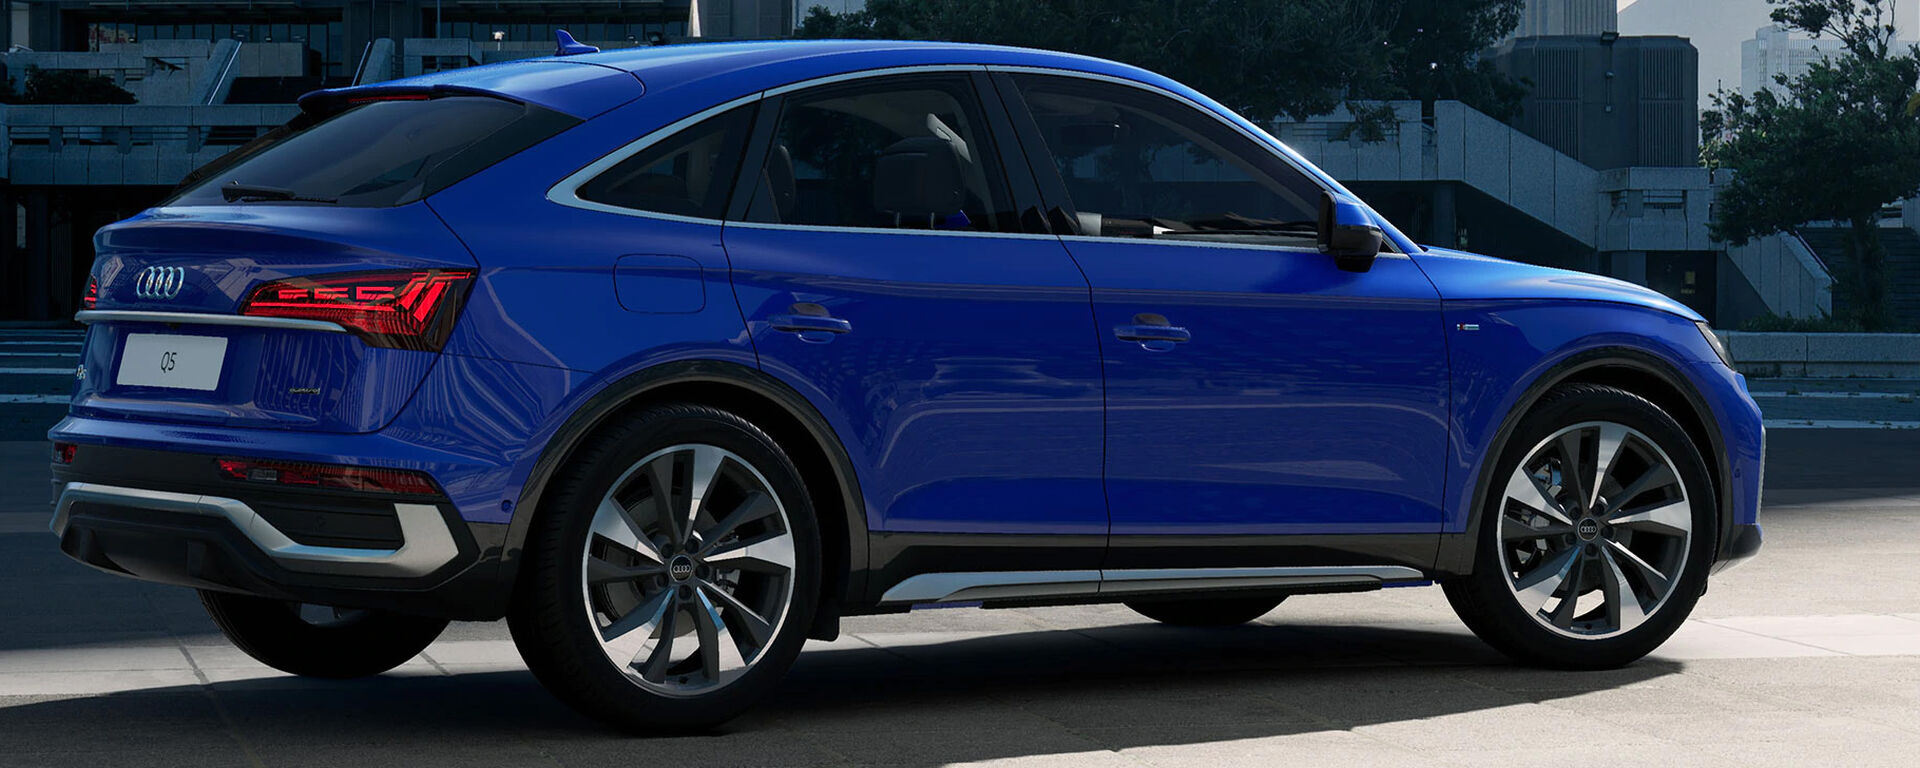 Audi Q5 Sportback 2021 in Ultrablau Metallic